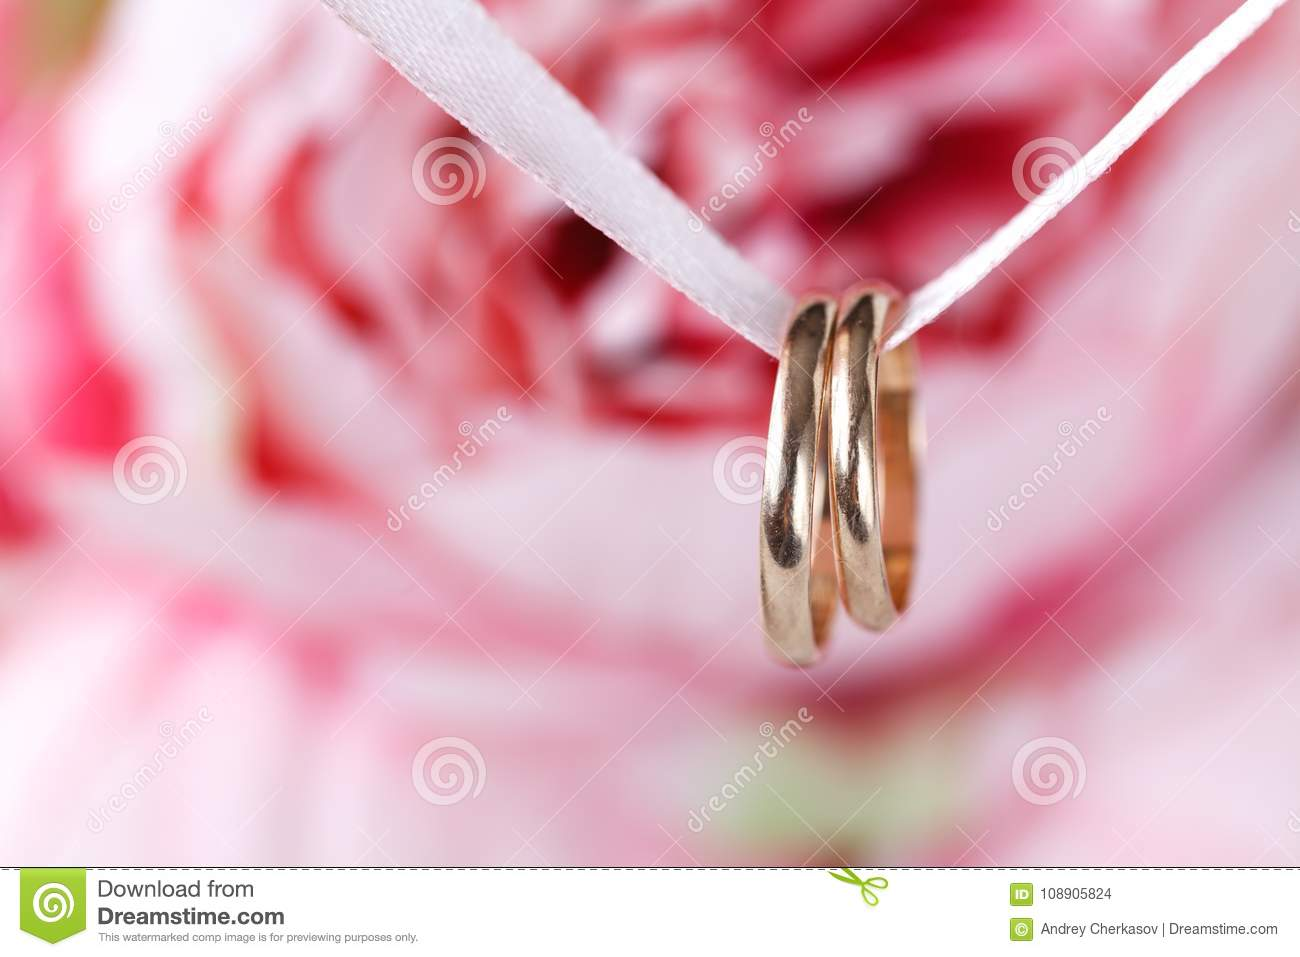 Engagement Wedding Rings, Close Up View Stock Photo - Image of gold ...